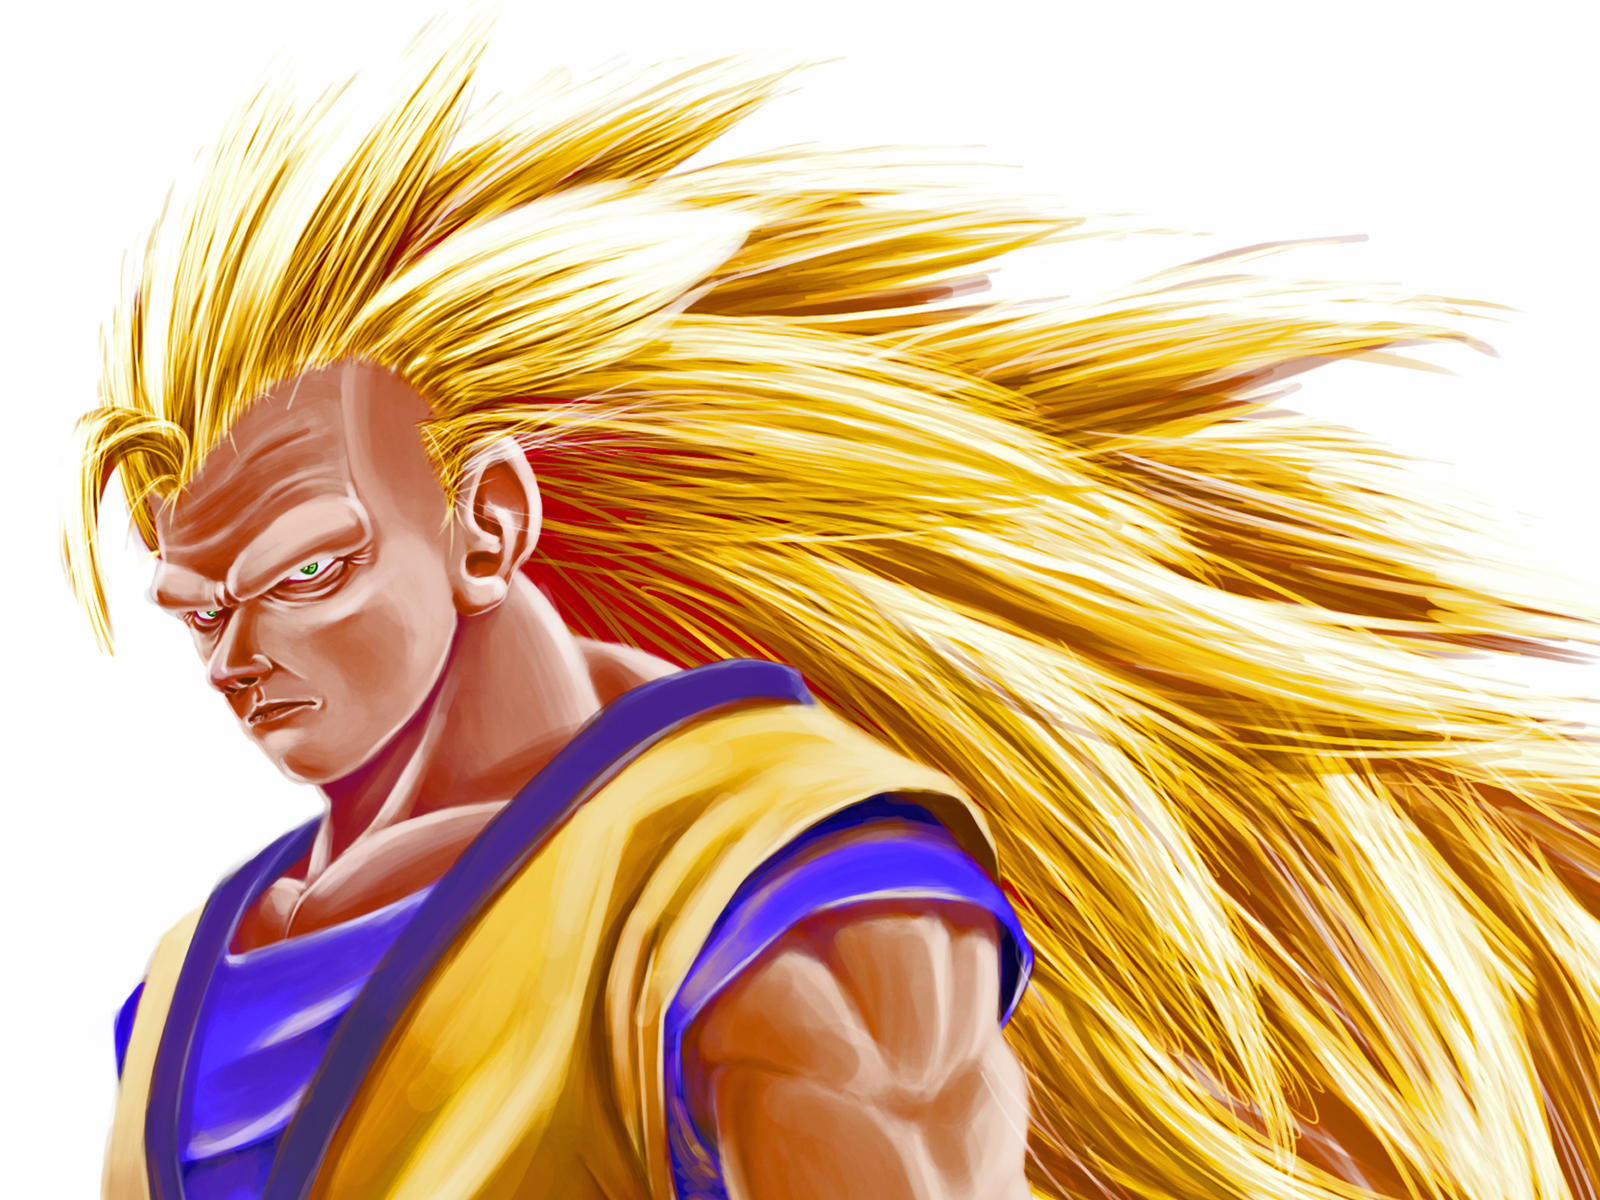 Goku Super Saiyan 3 By Han7s On DeviantArt